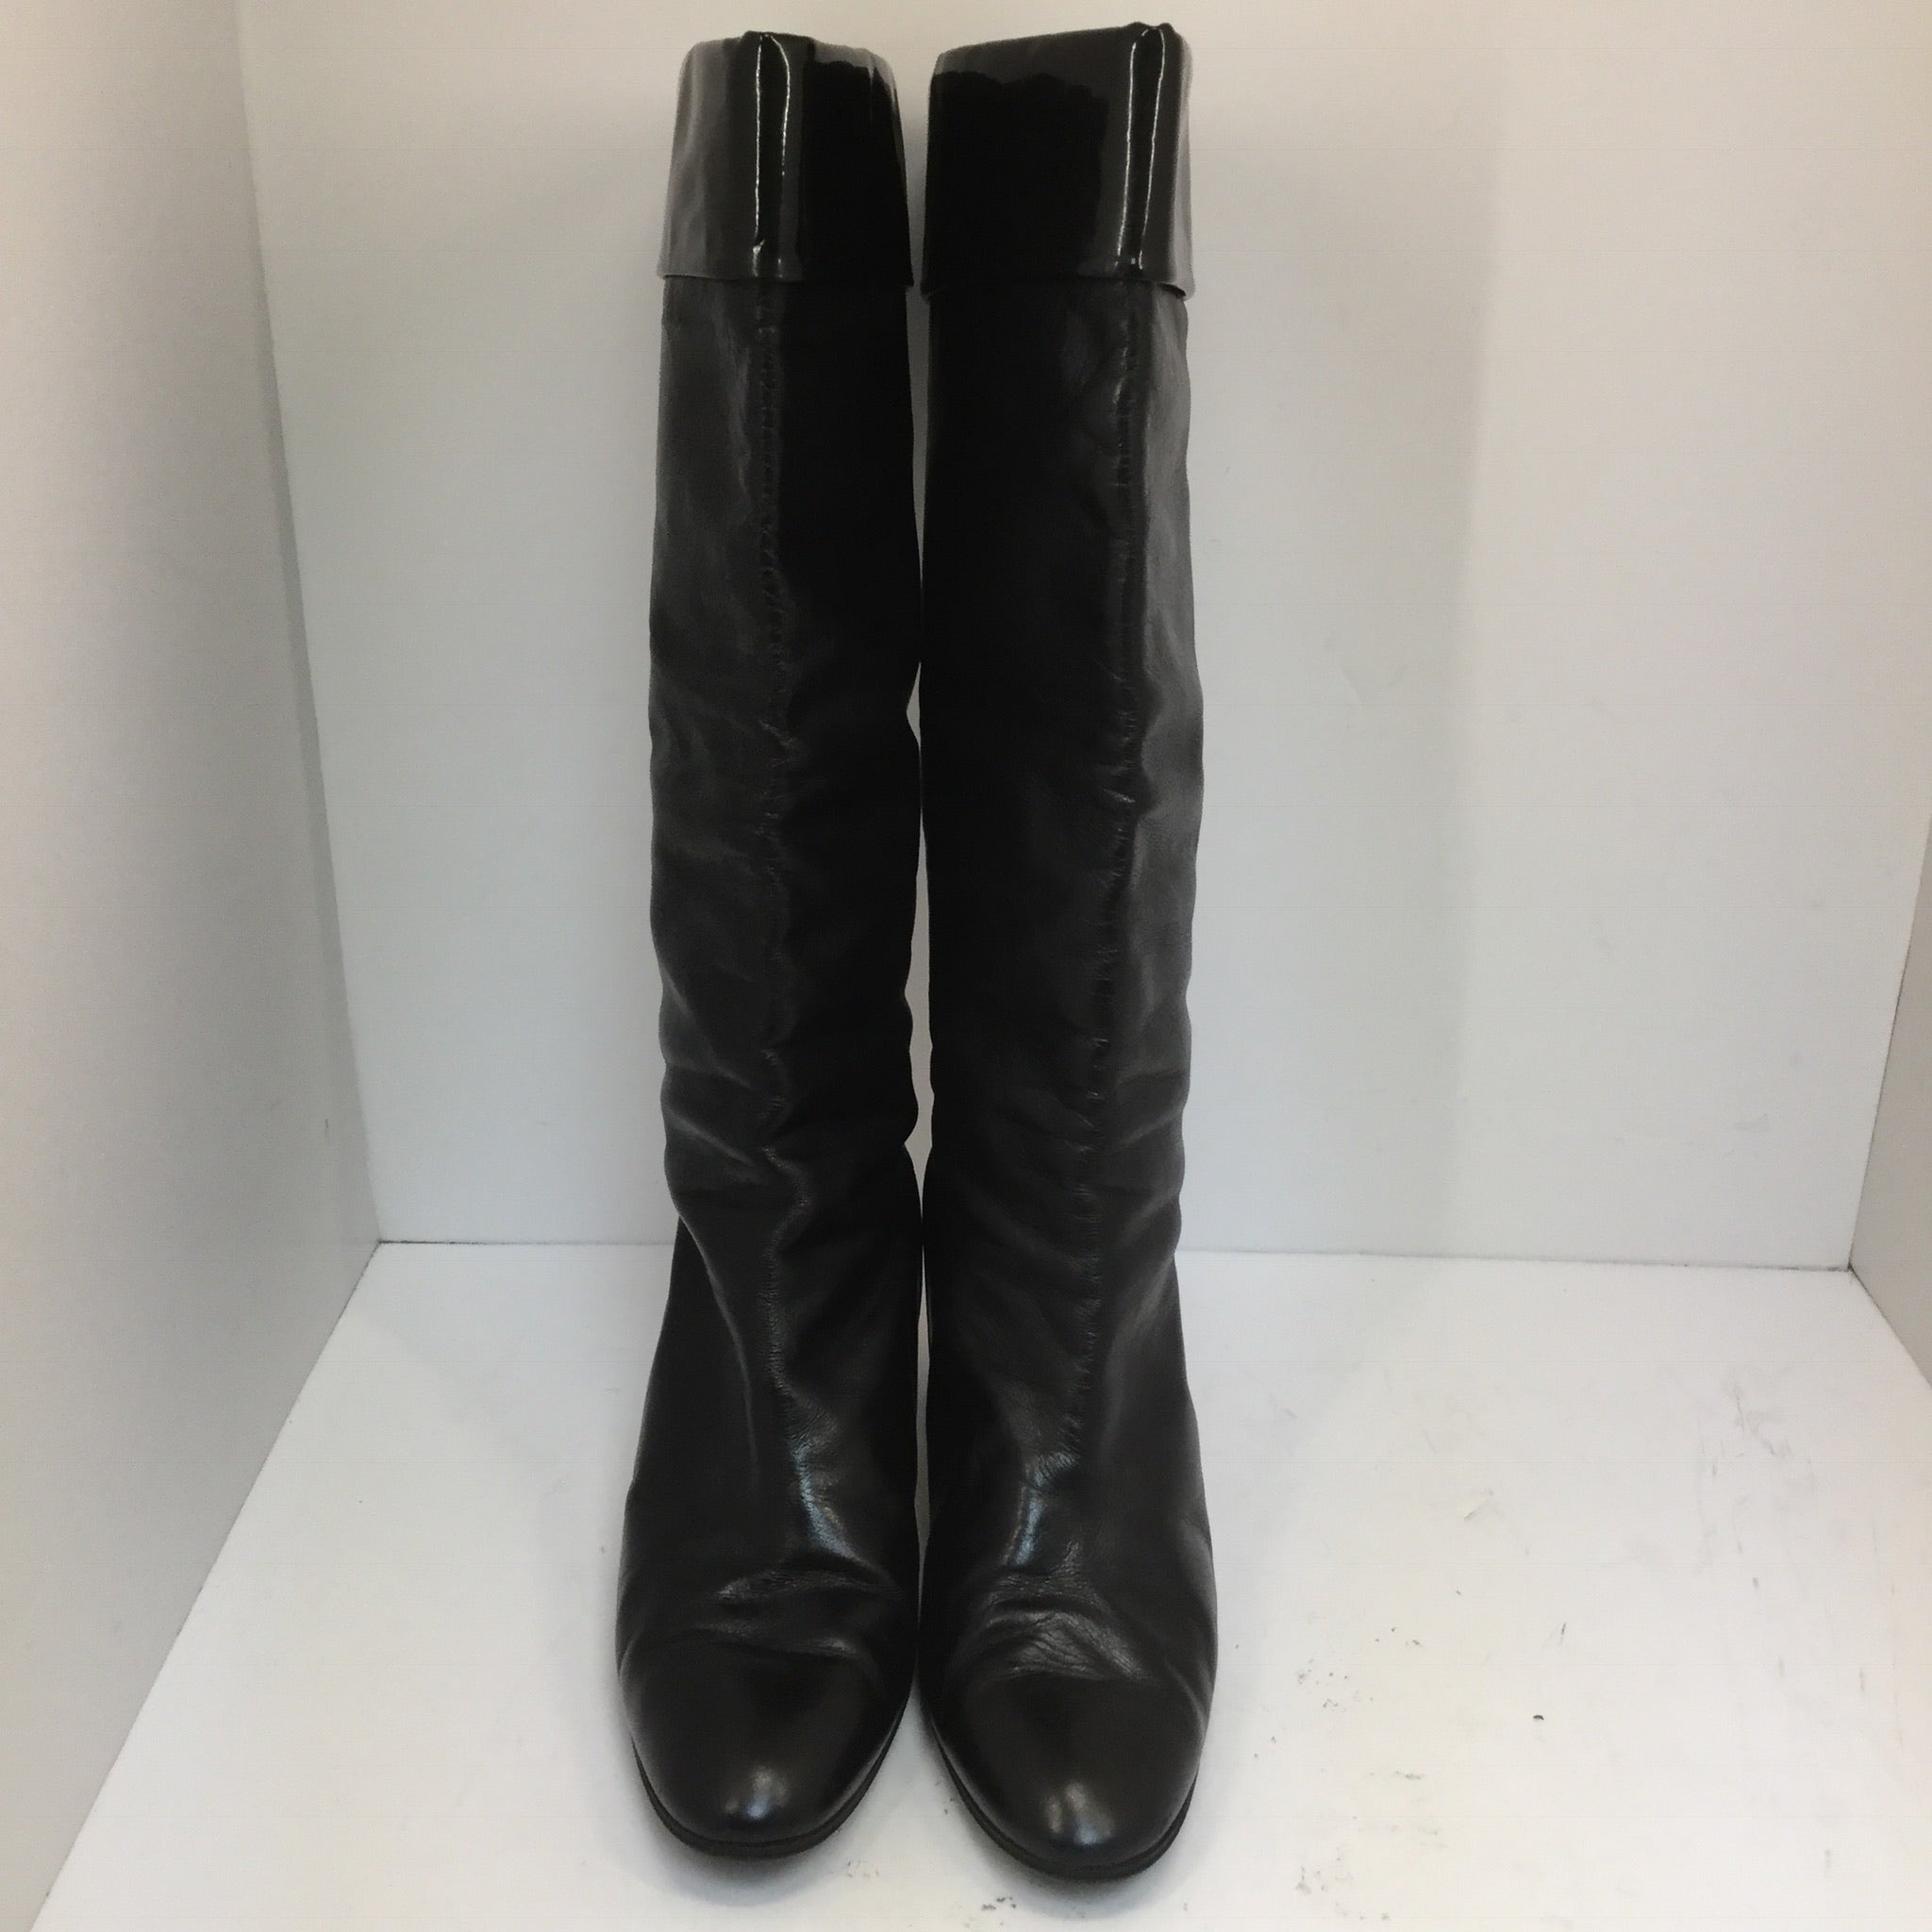 Pollini Black Leather Boots - size 37.5